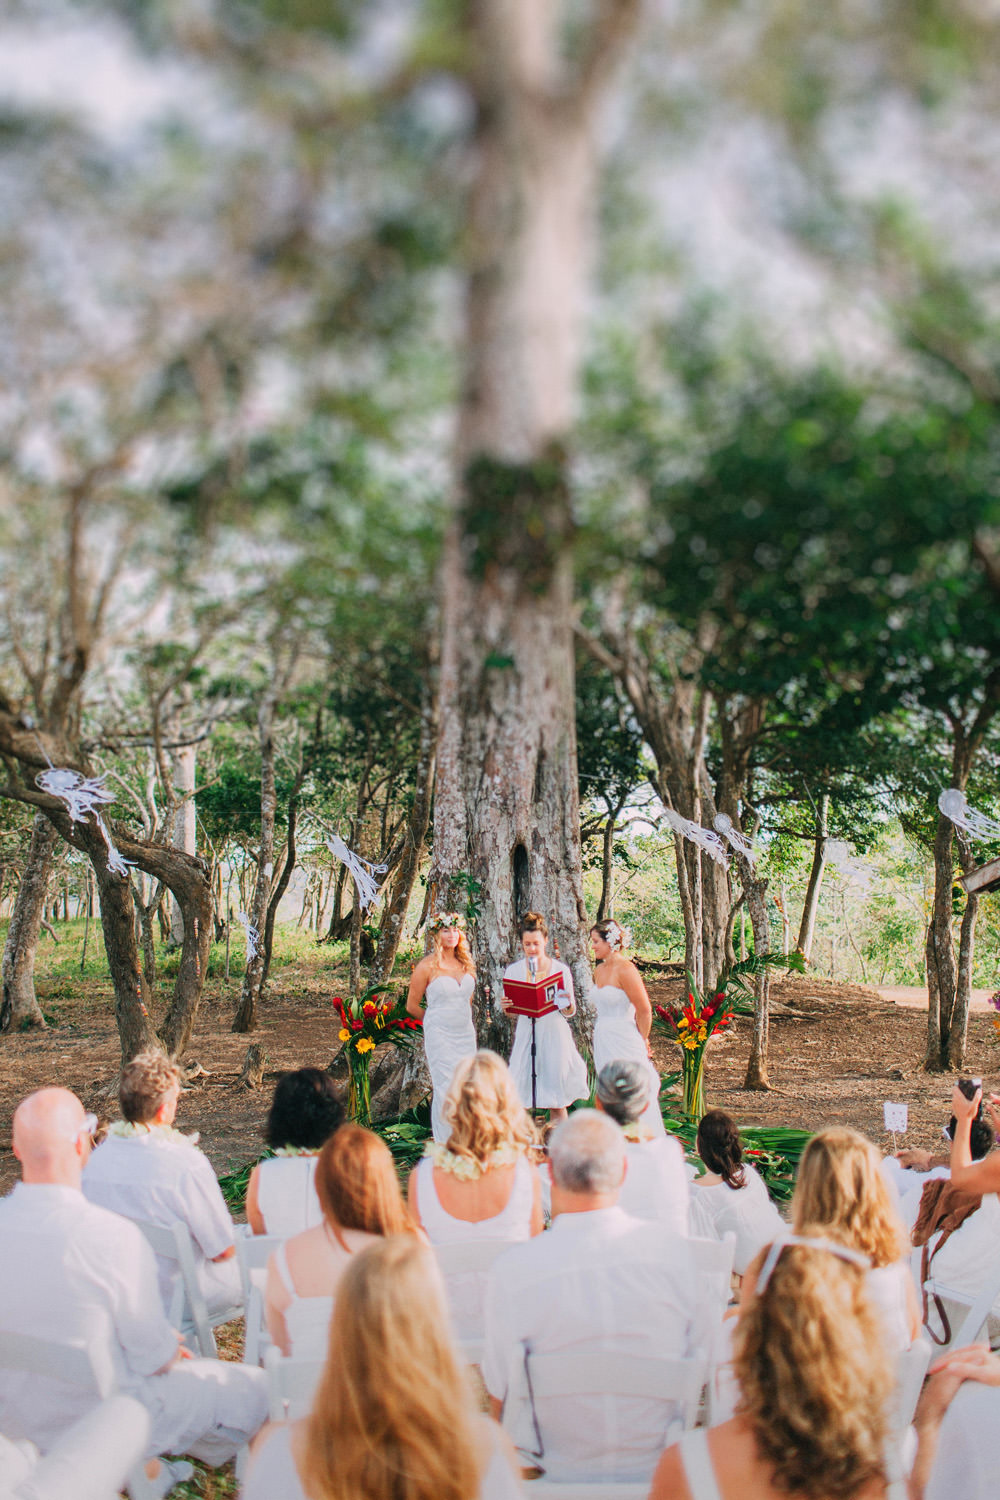 Jungle Wedding under the tree. Nicaragua